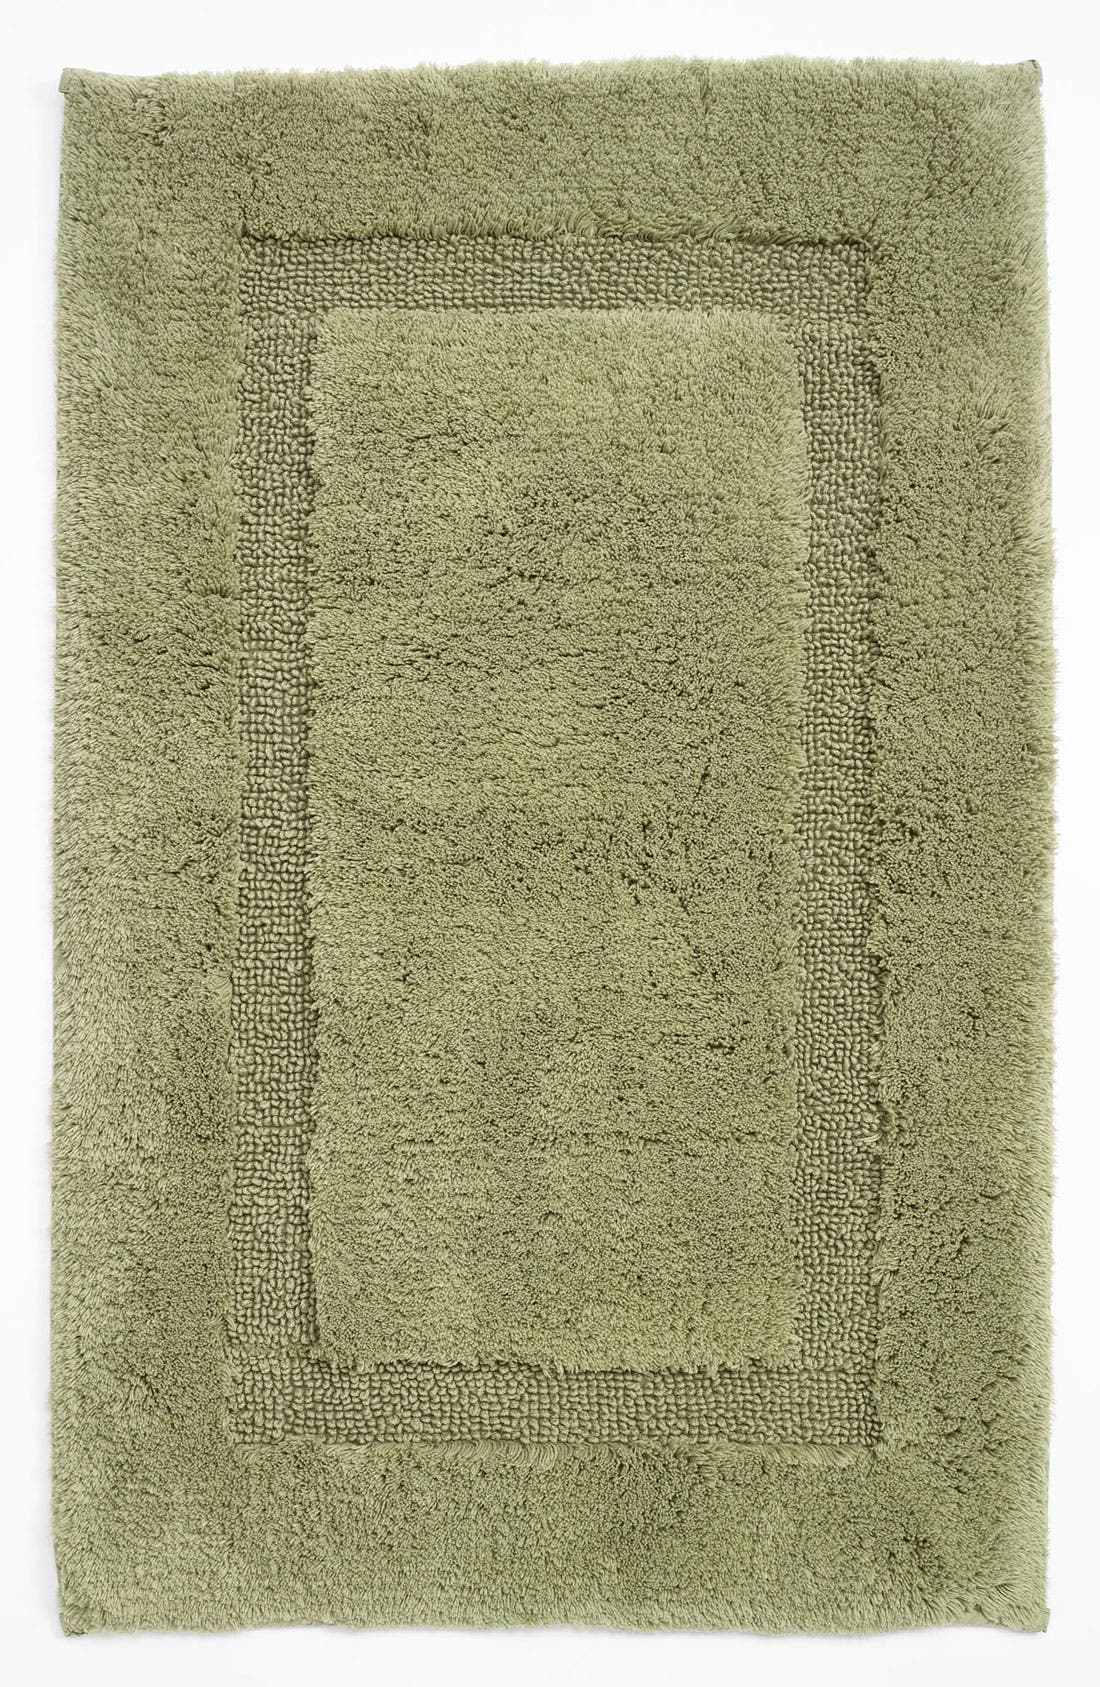 Alternate Image 1 Selected - Nordstrom at Home Bath Rug